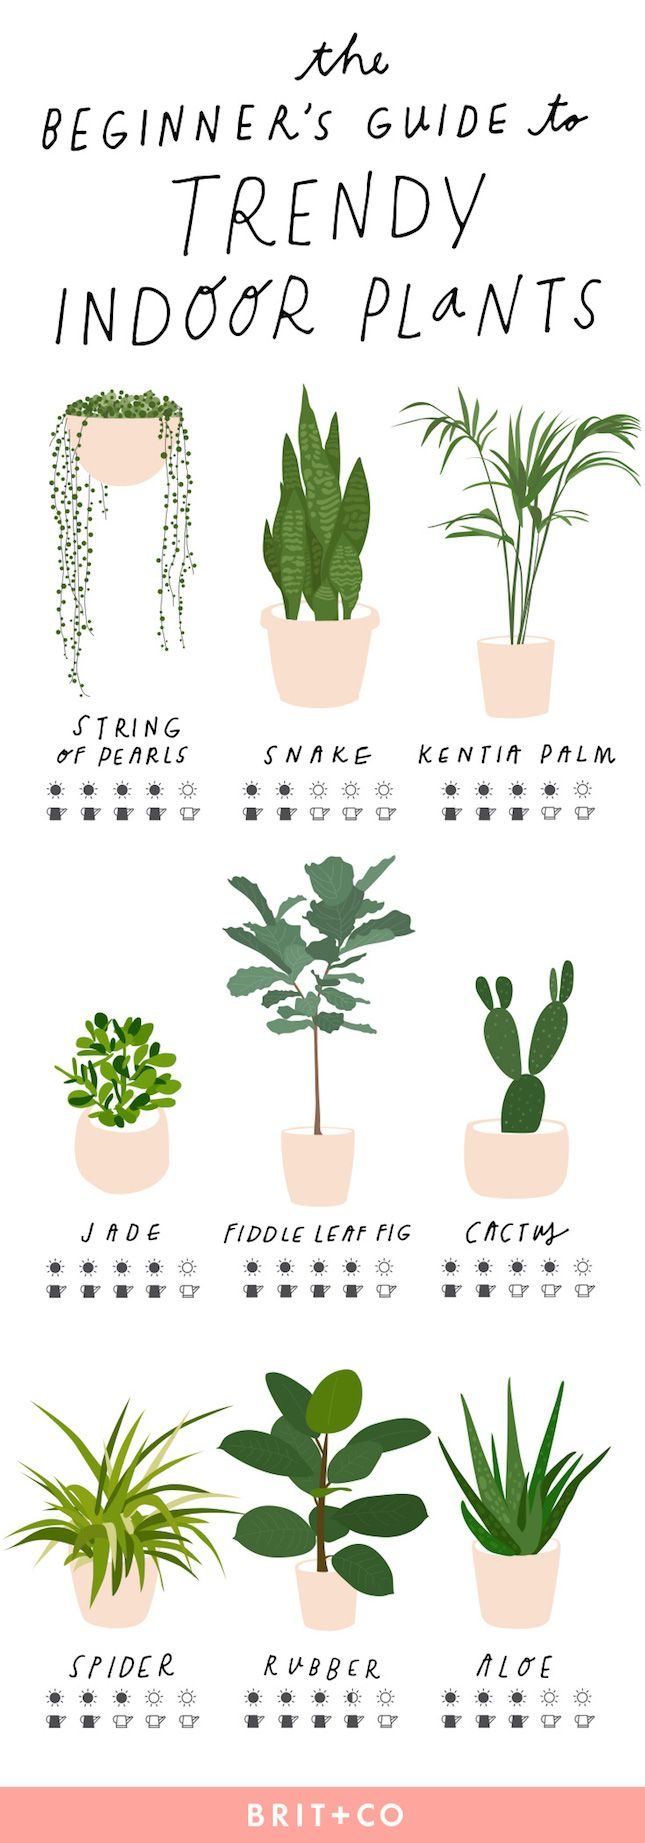 The Beginner's Guide to Trendy Indoor Plants | Brit + Co